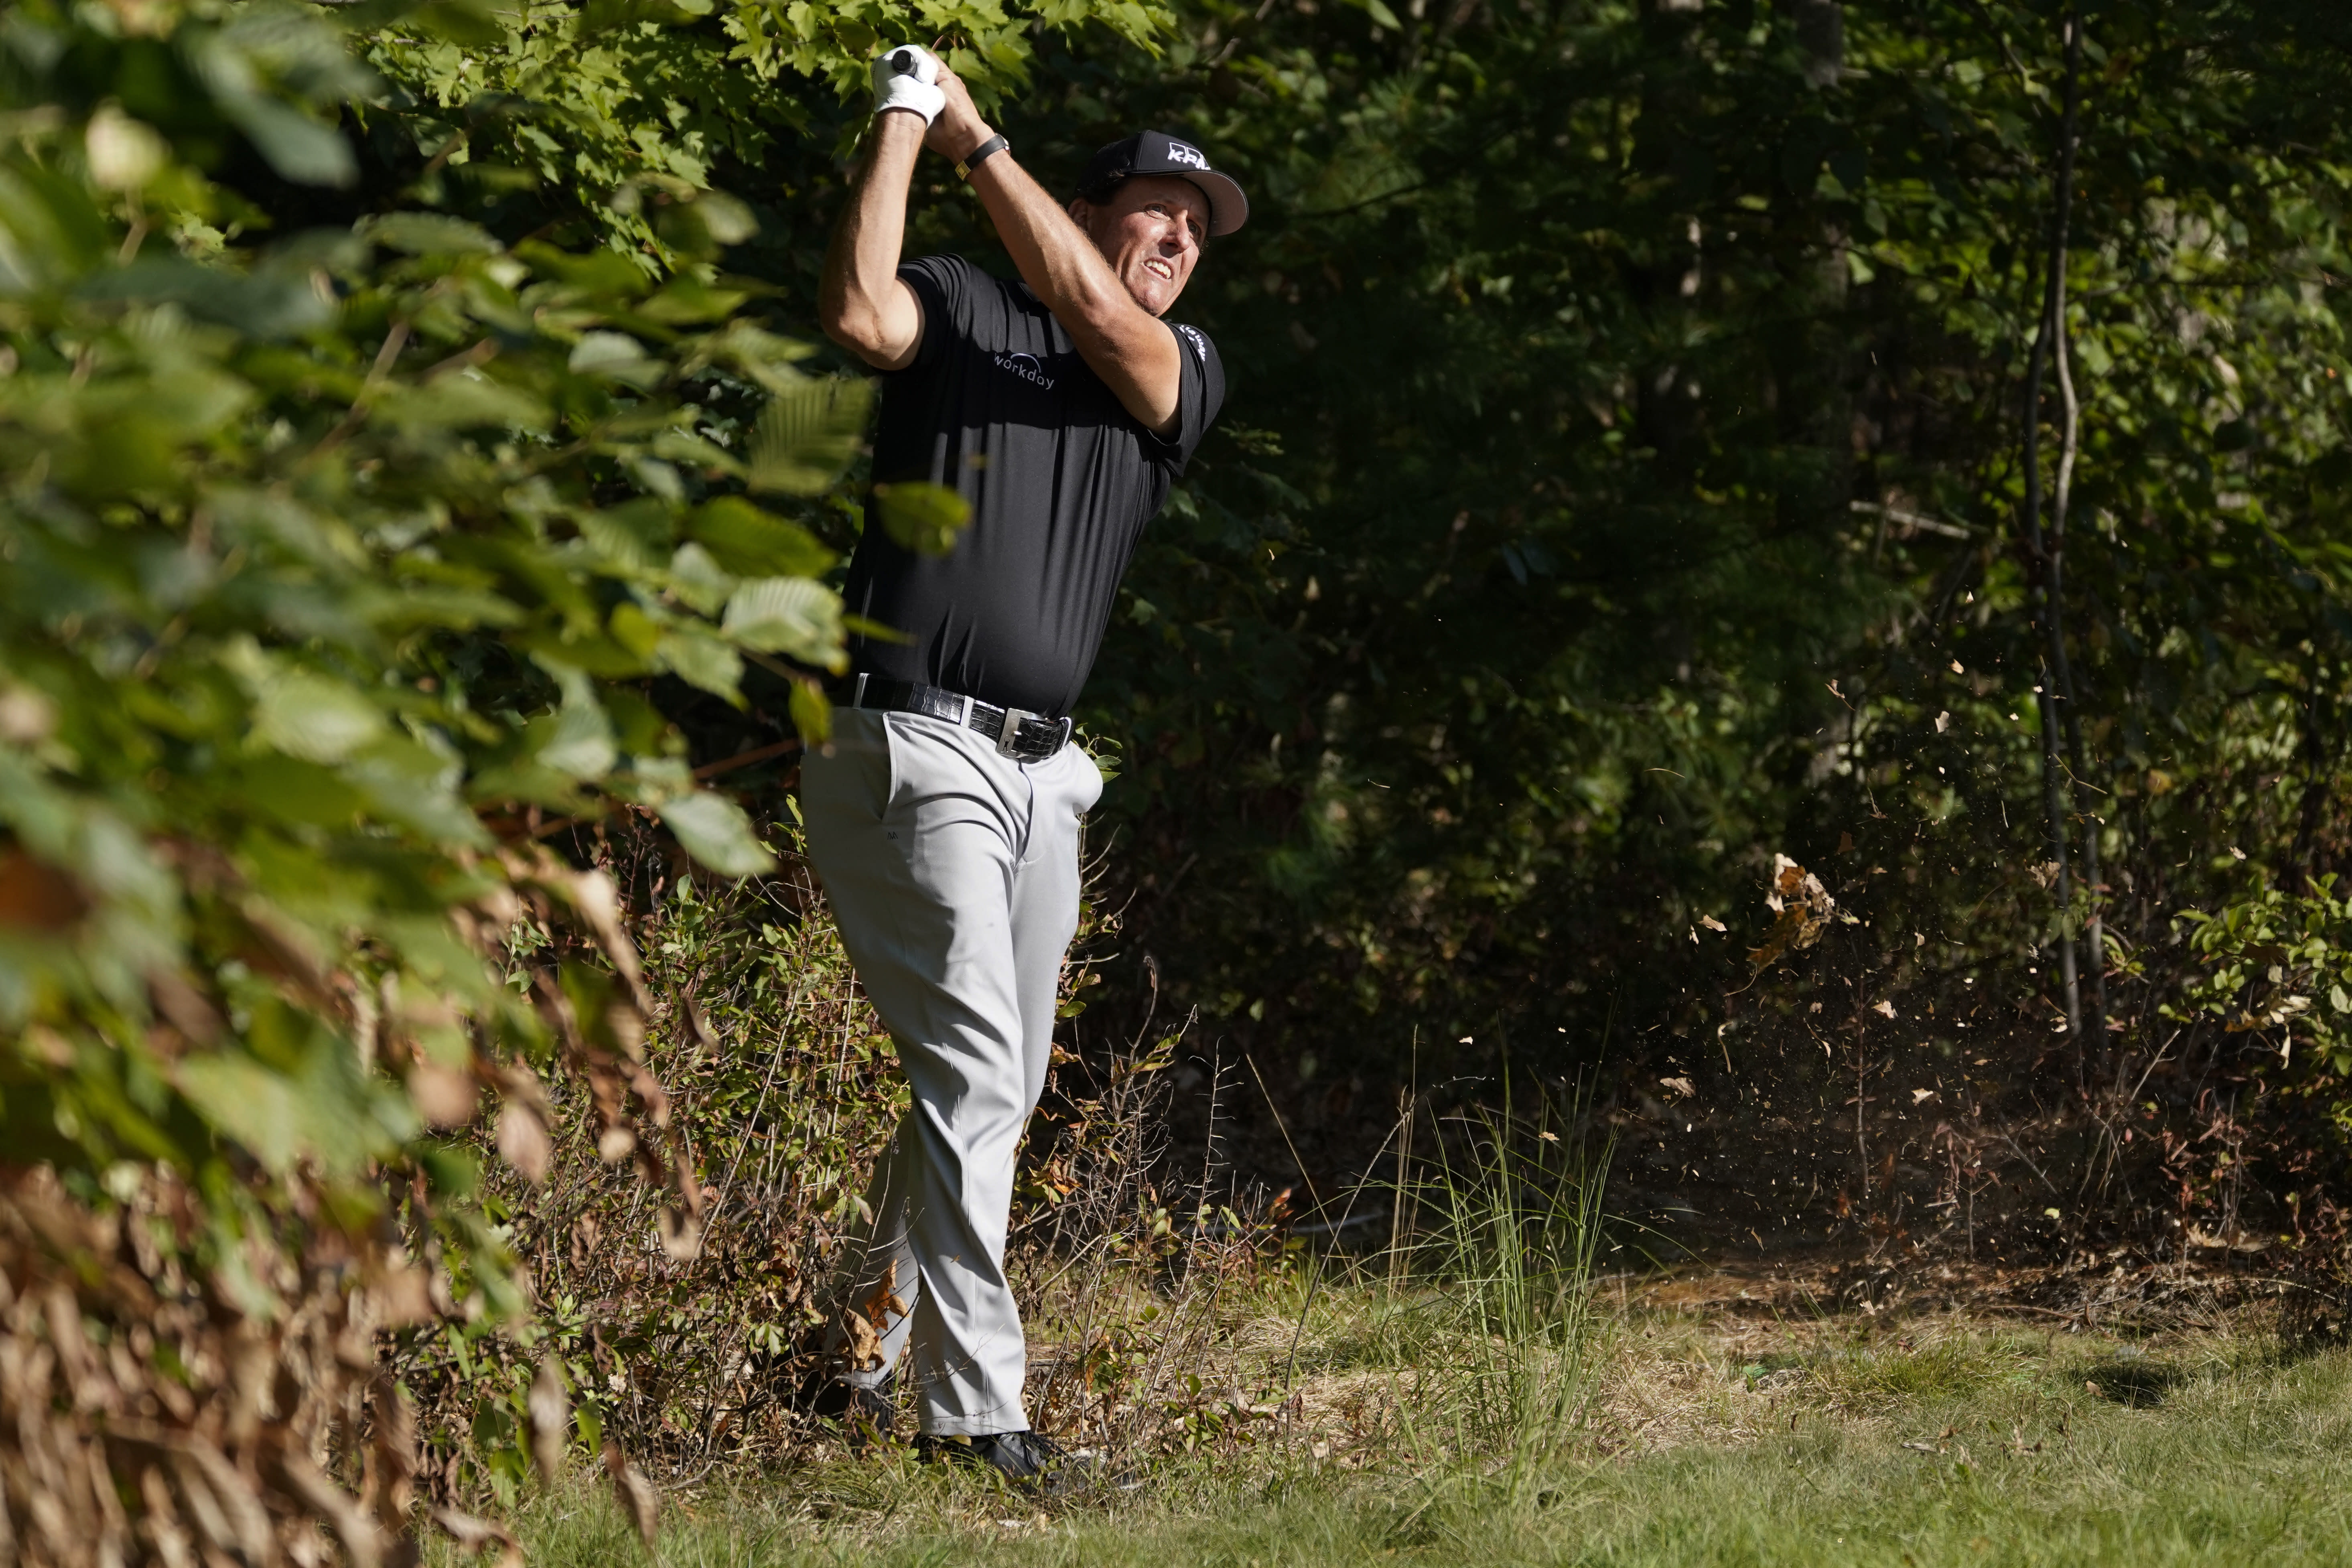 Phil Mickelson watches his shot out of the woods and onto the 14th green during the second round of the Northern Trust golf tournament at TPC Boston, Friday, Aug. 21, 2020, in Norton, Mass. (AP Photo/Charles Krupa)